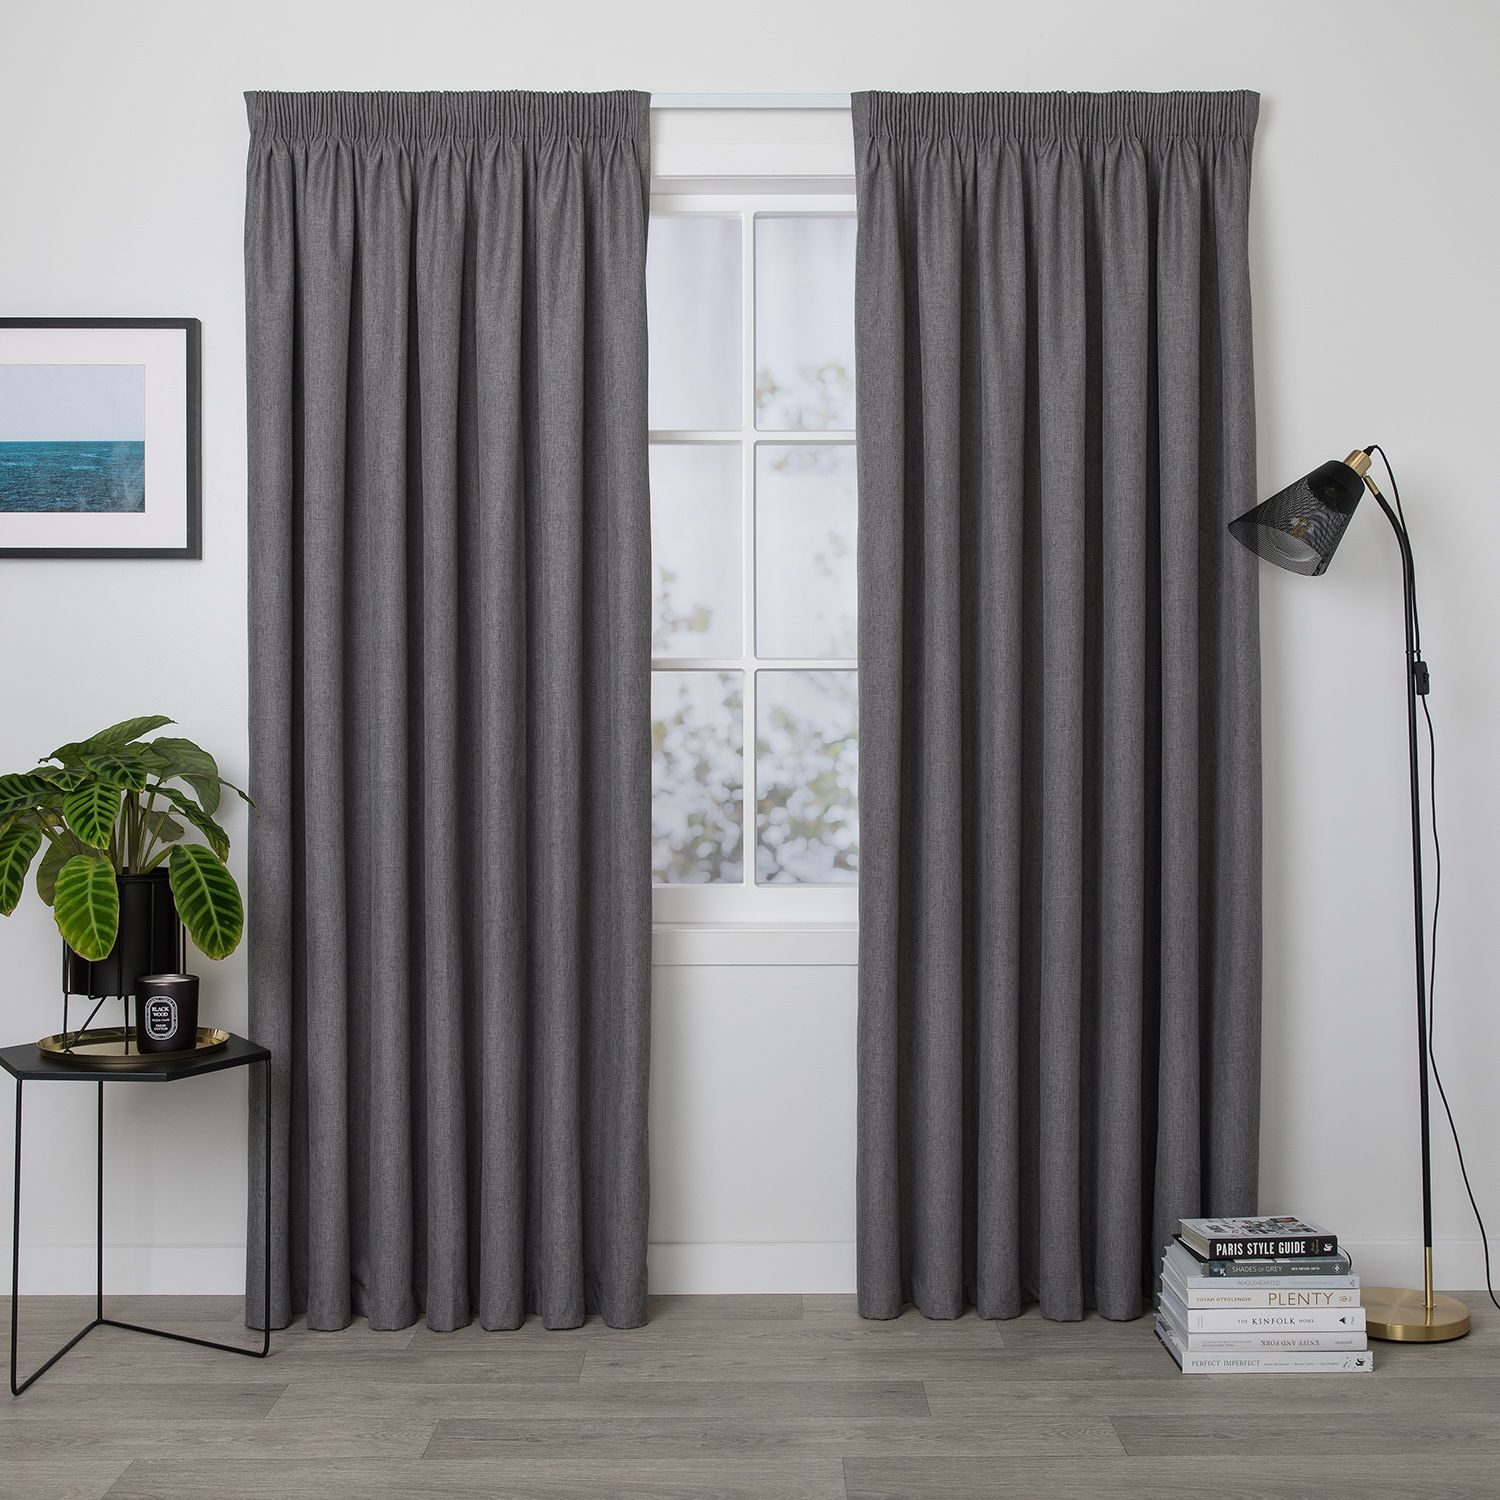 Preston Slate Readymade Blockout Pencil Pleat Curtain Curtain Studio Buy Curtains Online Curtains Pleated Curtains Velvet Curtains